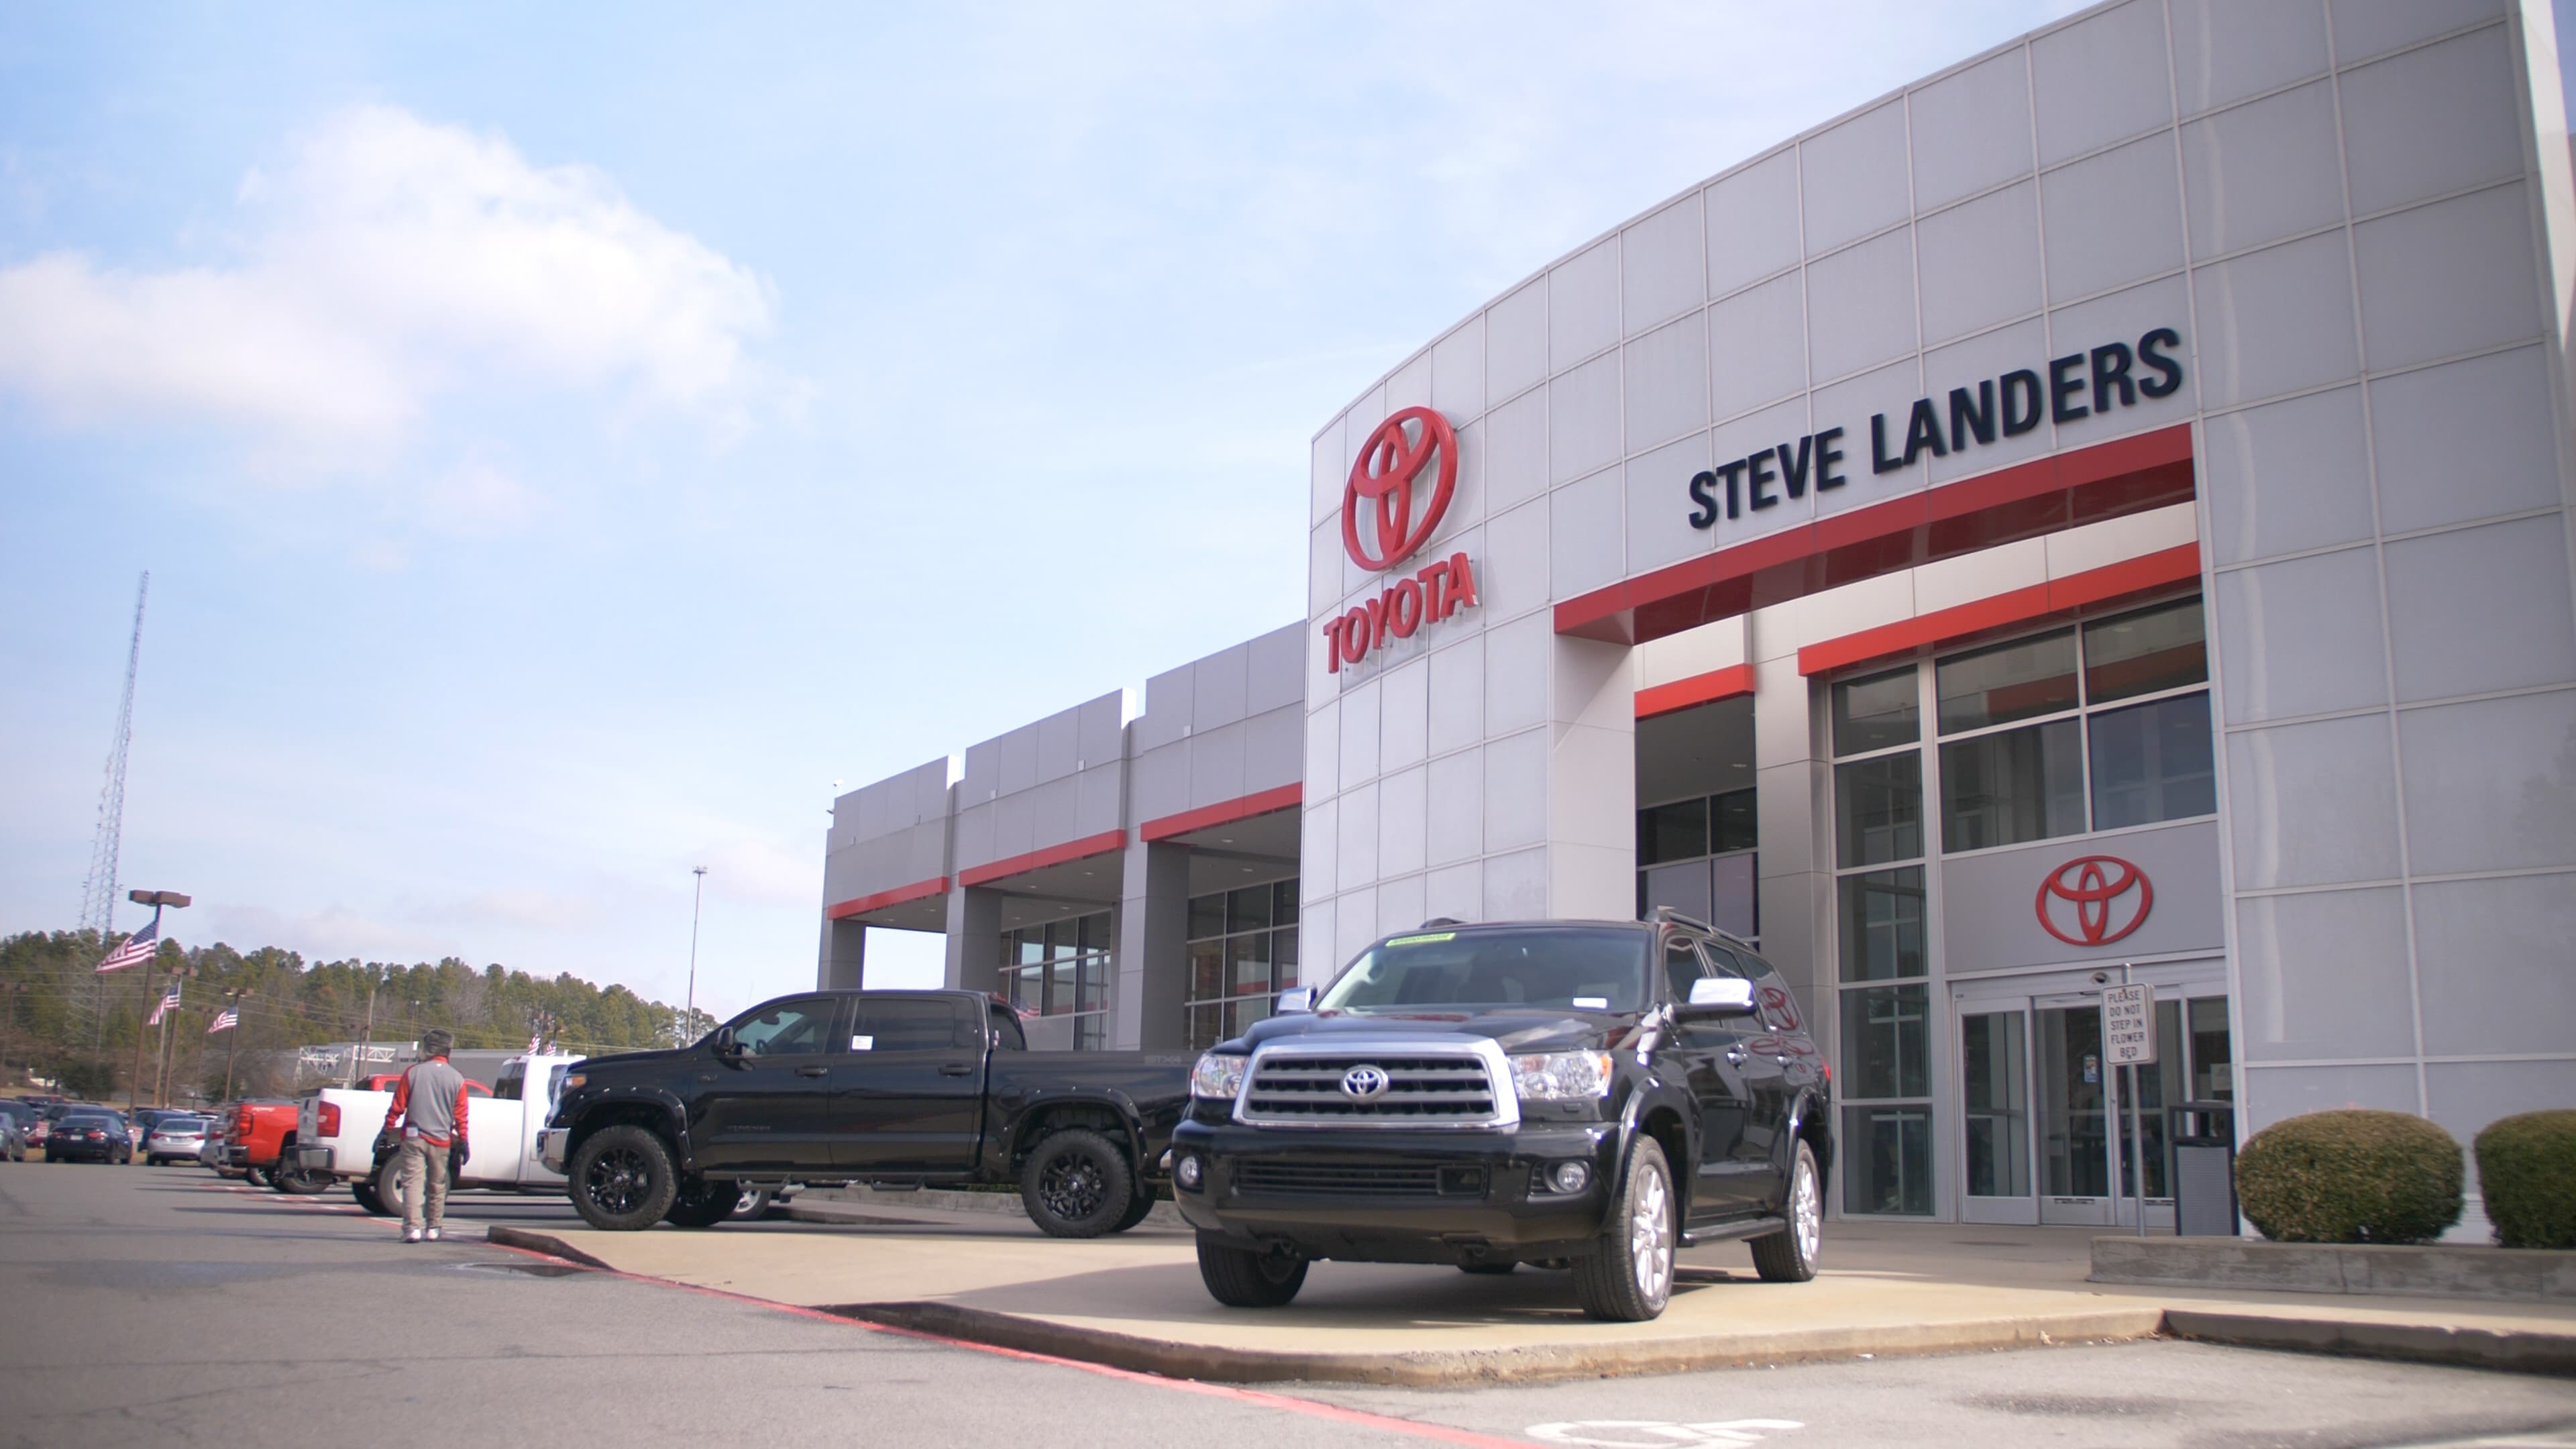 Elegant Steve Landers Toyota In Little Rock, Arkansas Treats The Needs Of Each  Individual Customer With Paramount Concern. We Know That You Have High  Expectations, ...